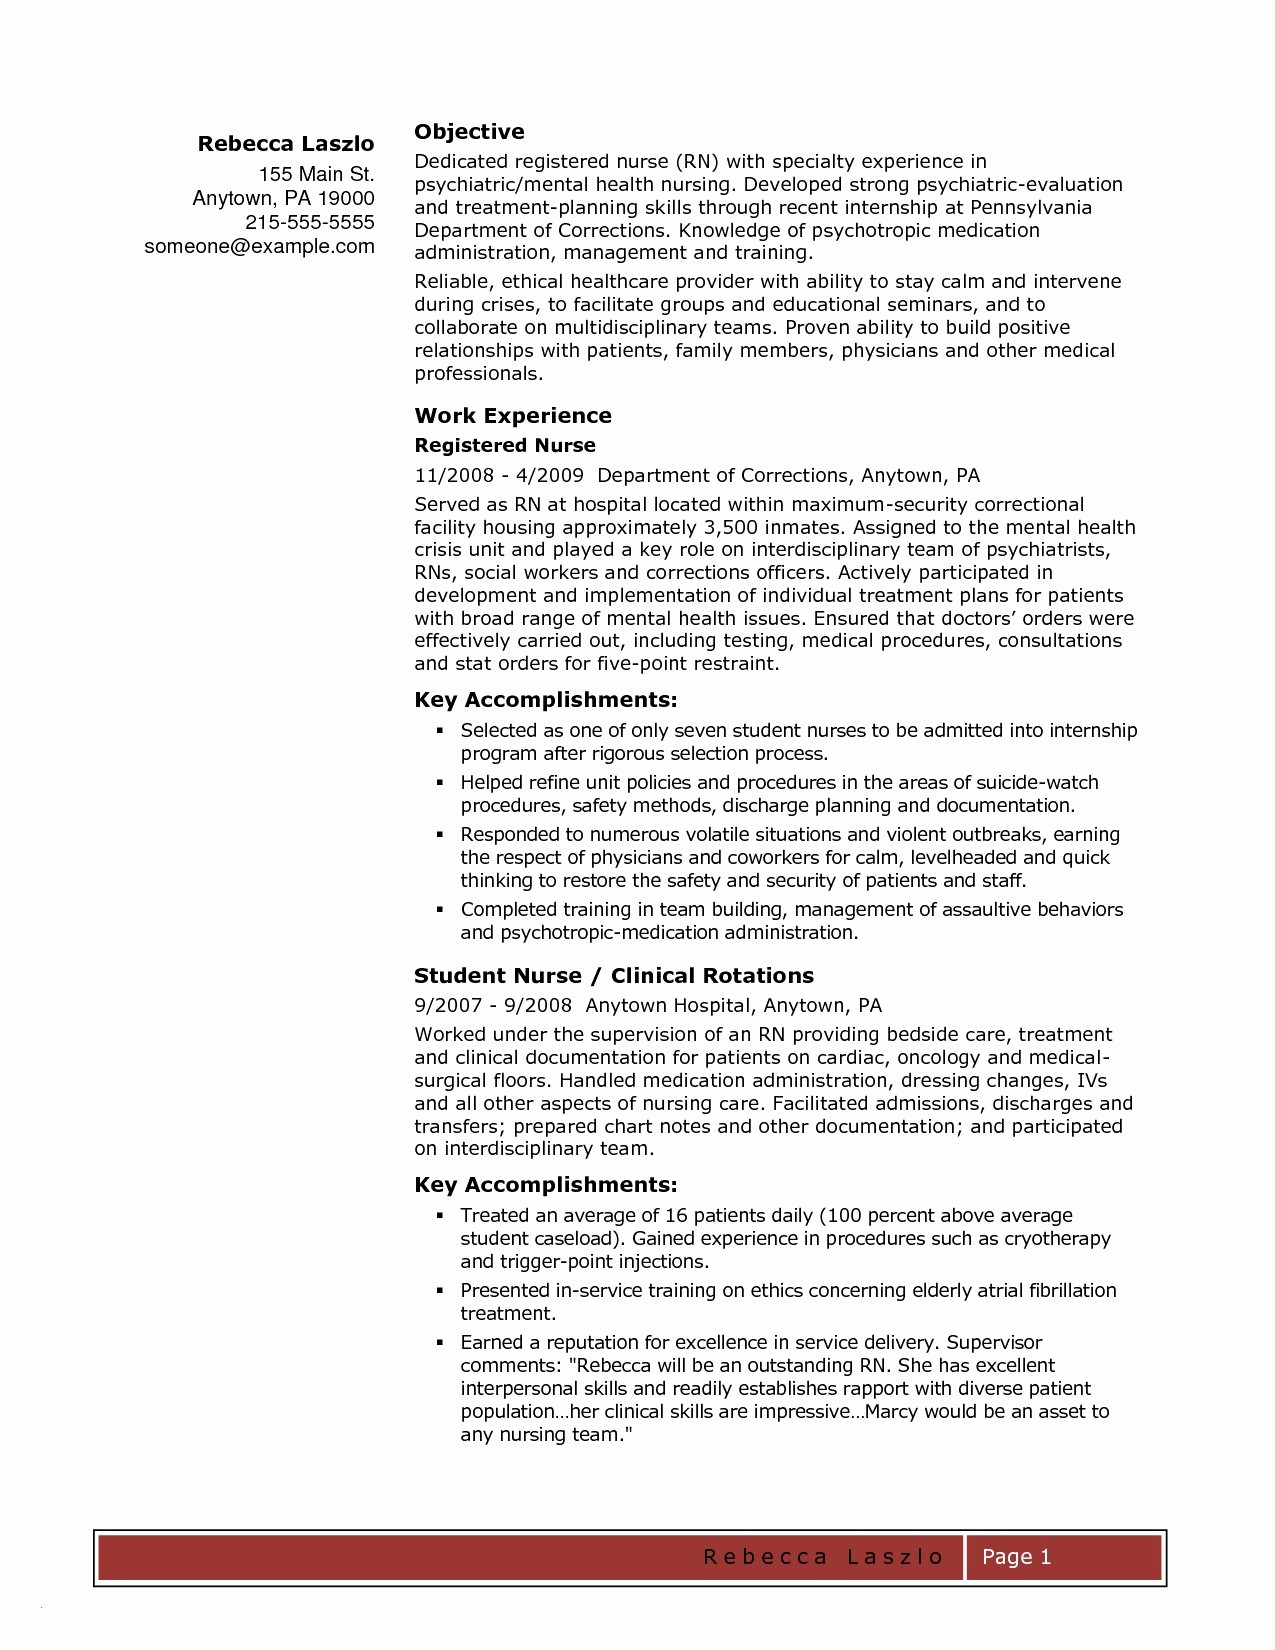 Resume for Dialysis Technician - Dialysis Technician Resume Valid Dialysis Technician Resume Charge